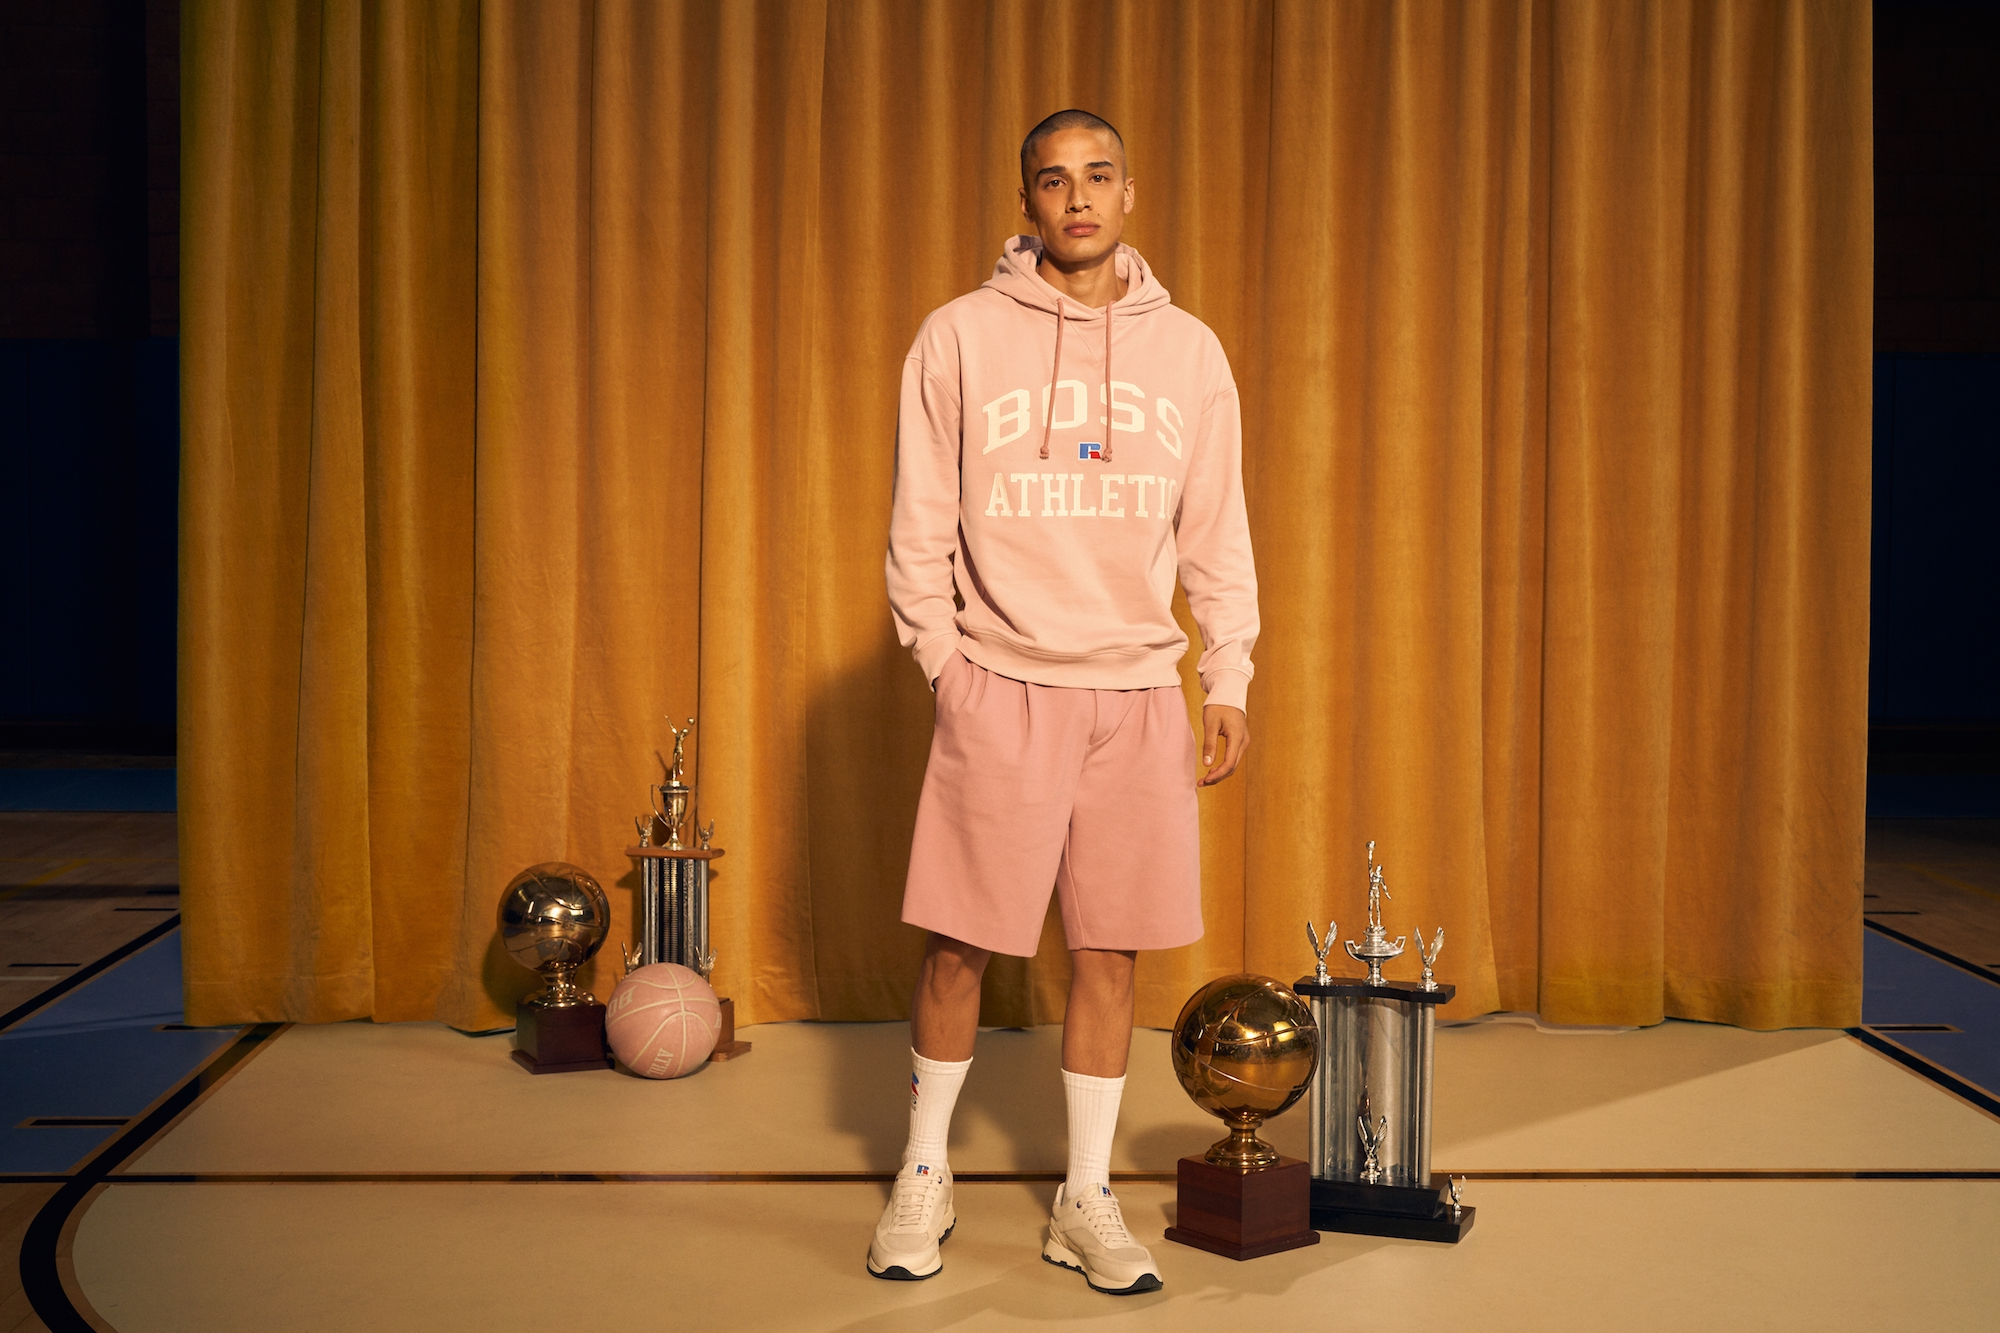 BOSS x Russel Athletic pink outfit